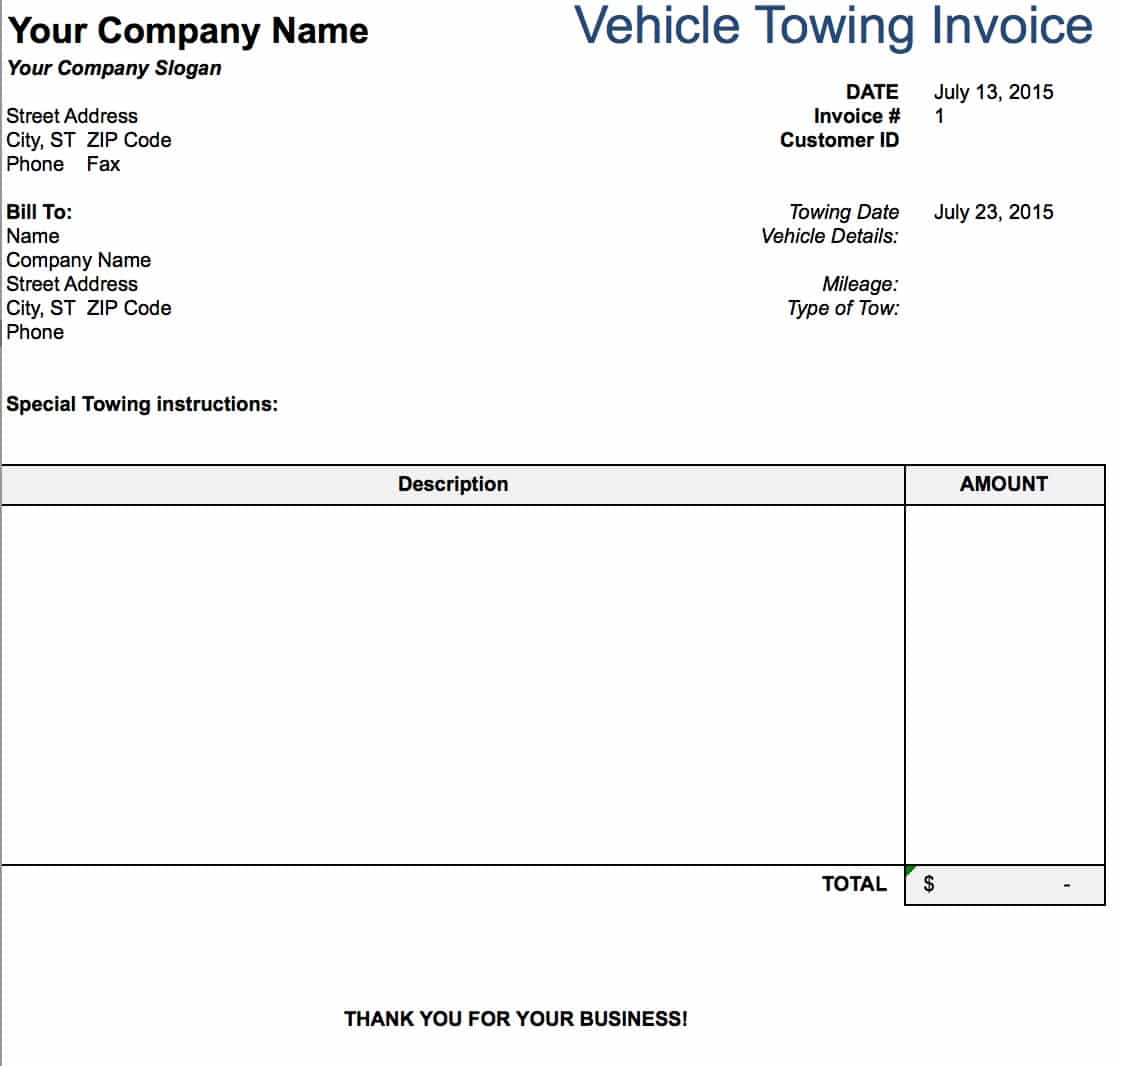 Free Tow Service Invoice Template Excel PDF Word Doc - Invoice sample template for service business